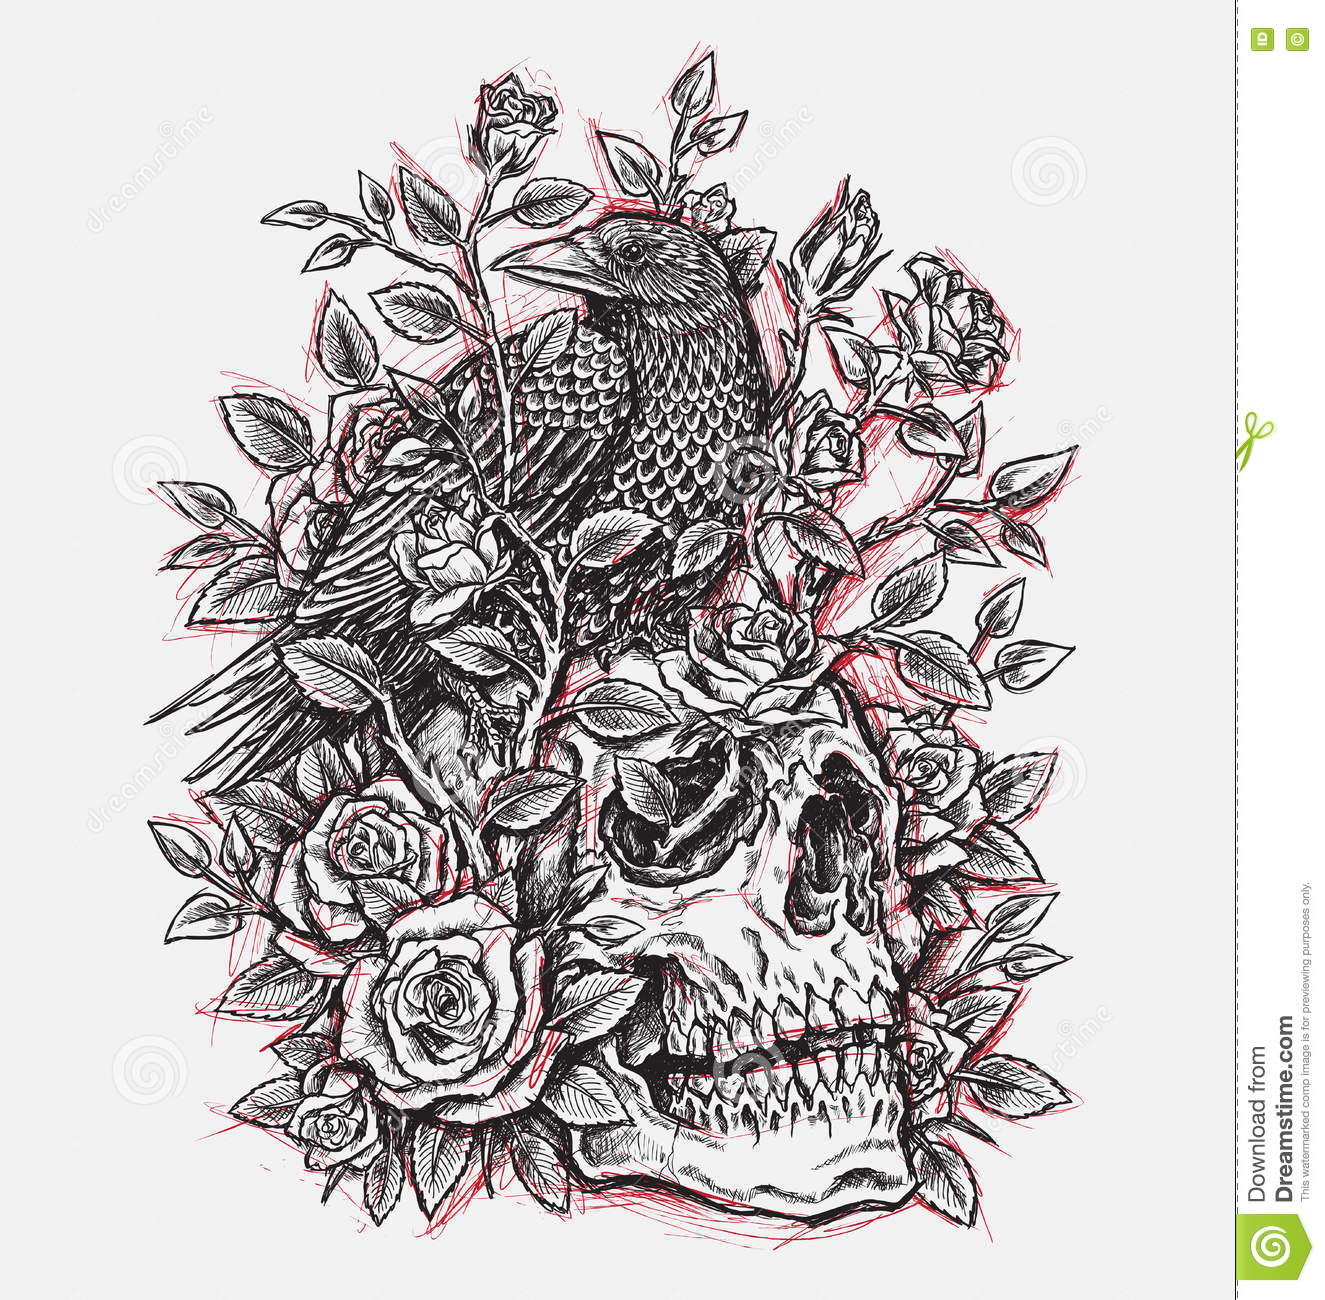 Sketchy Crow Roses And Skull Tattoo Design Linework Stock Vector